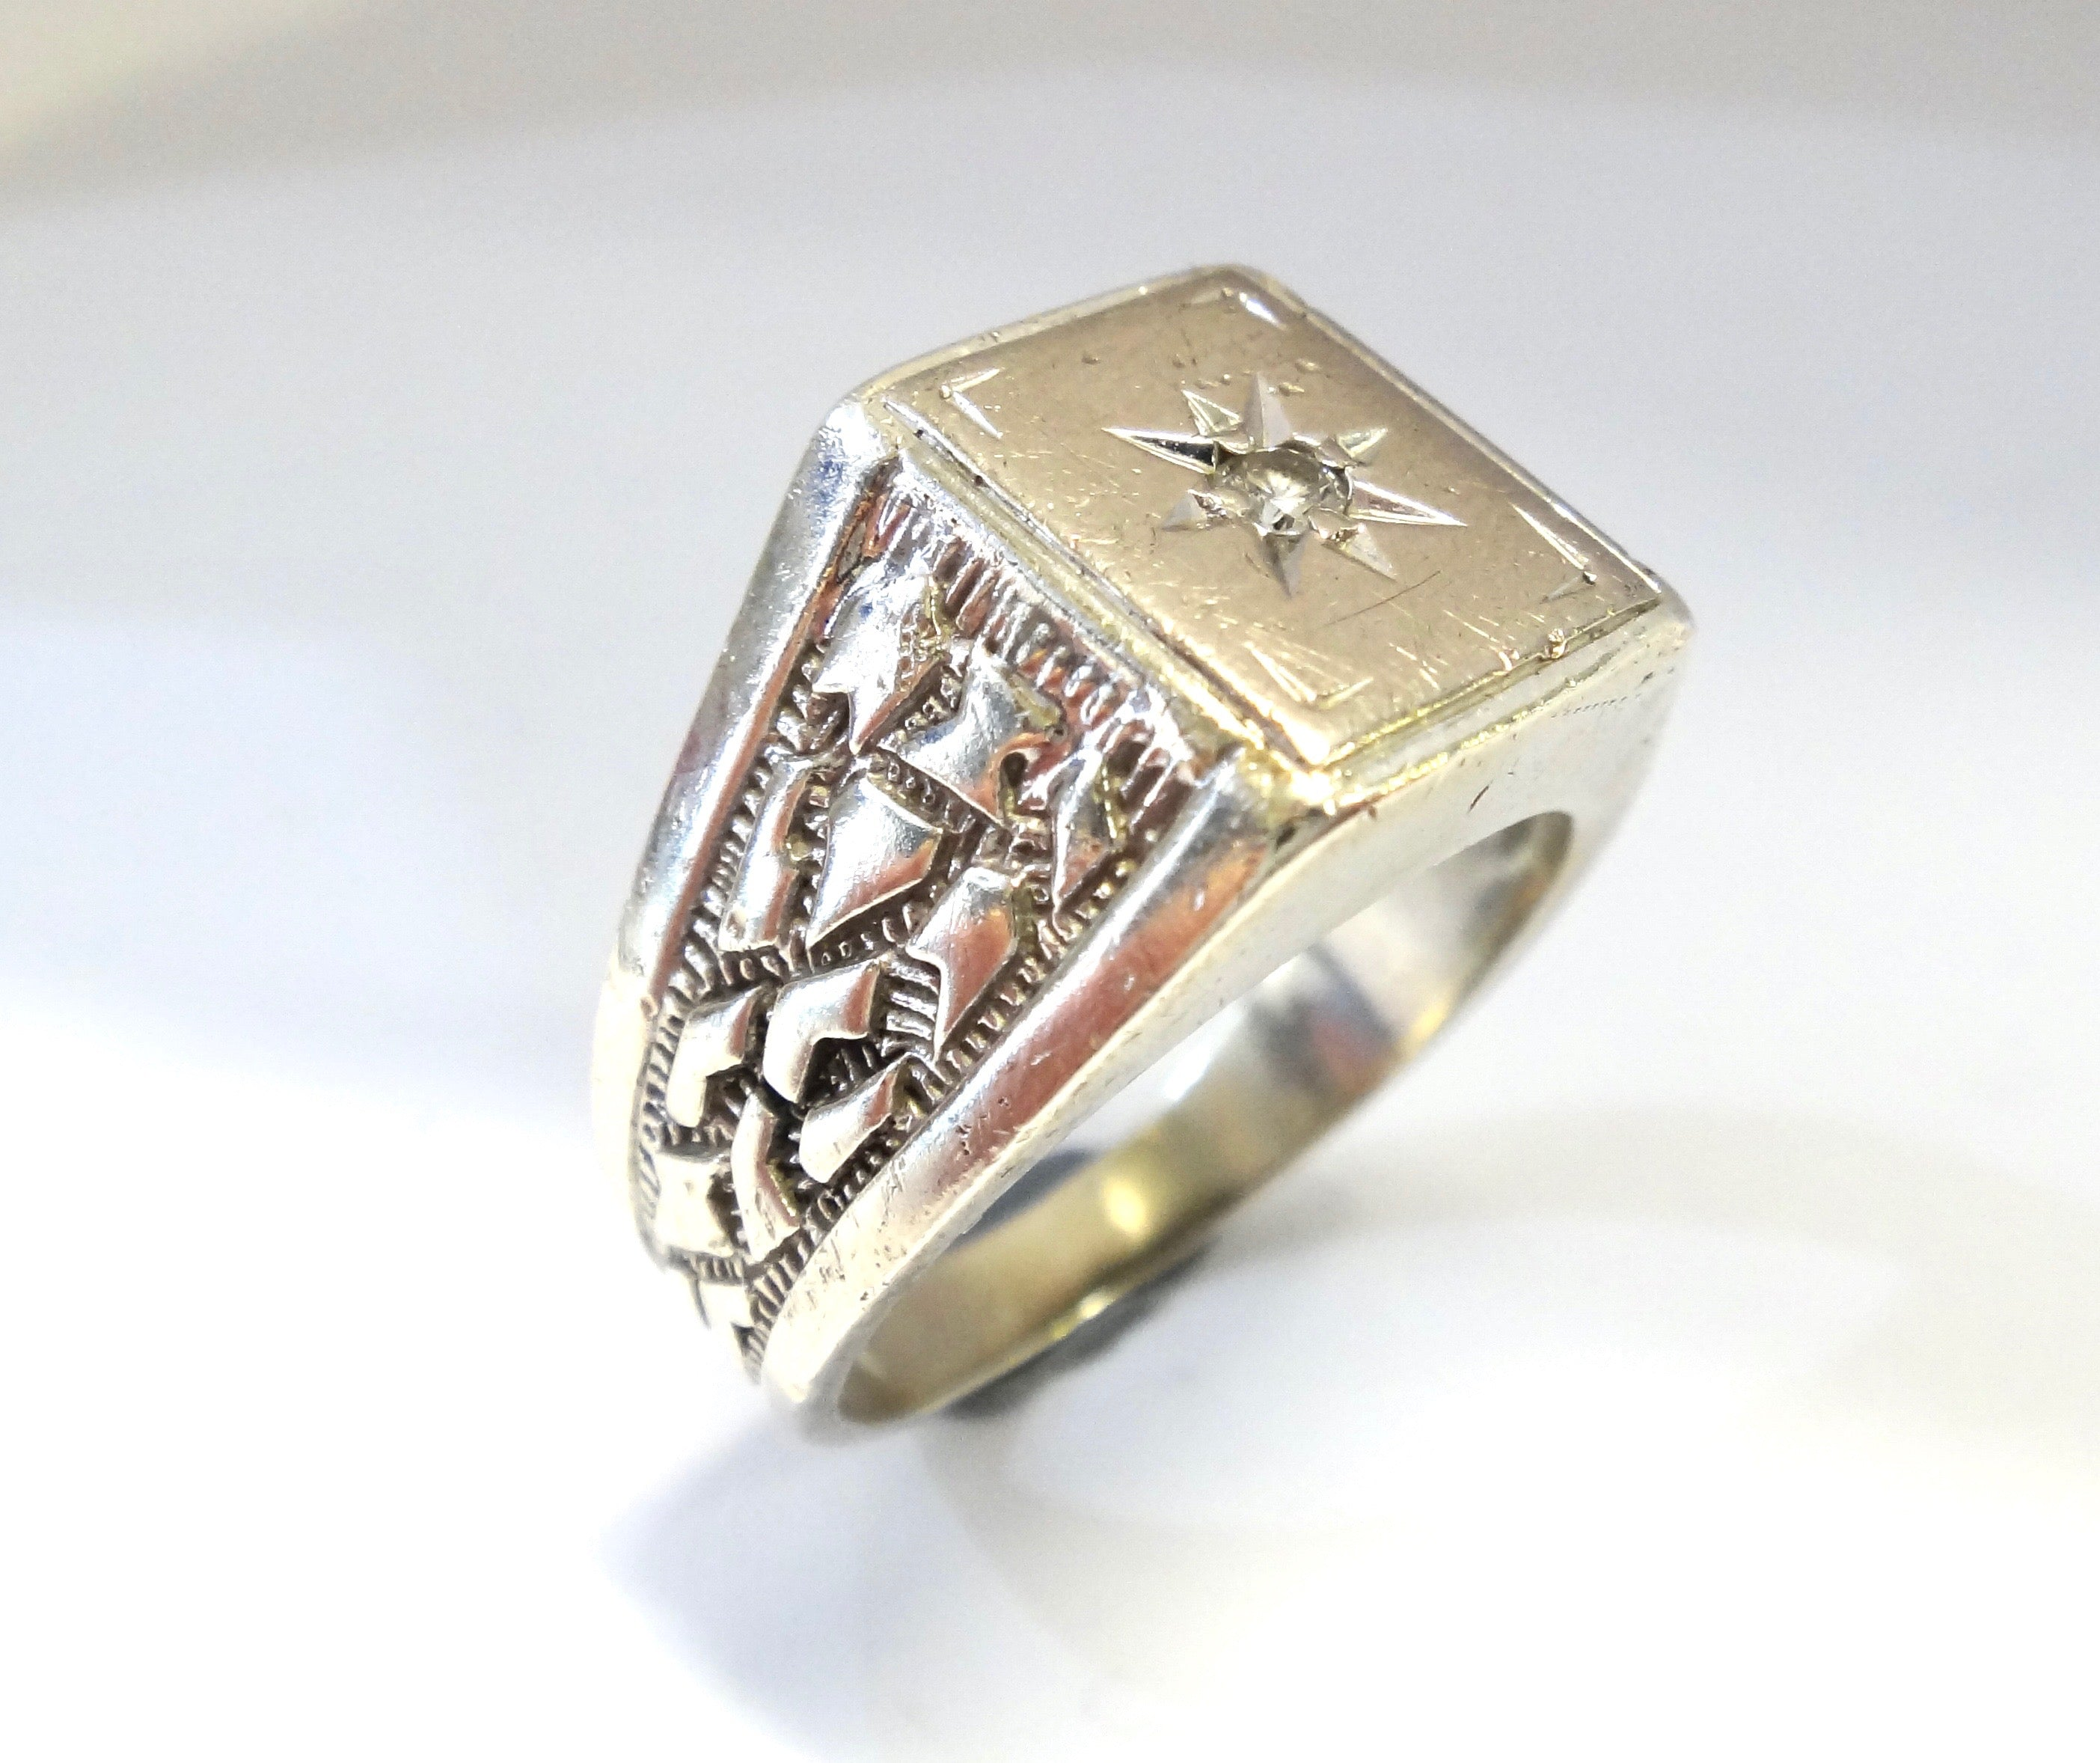 Mens 9CT White GOLD & Diamond Signet Ring